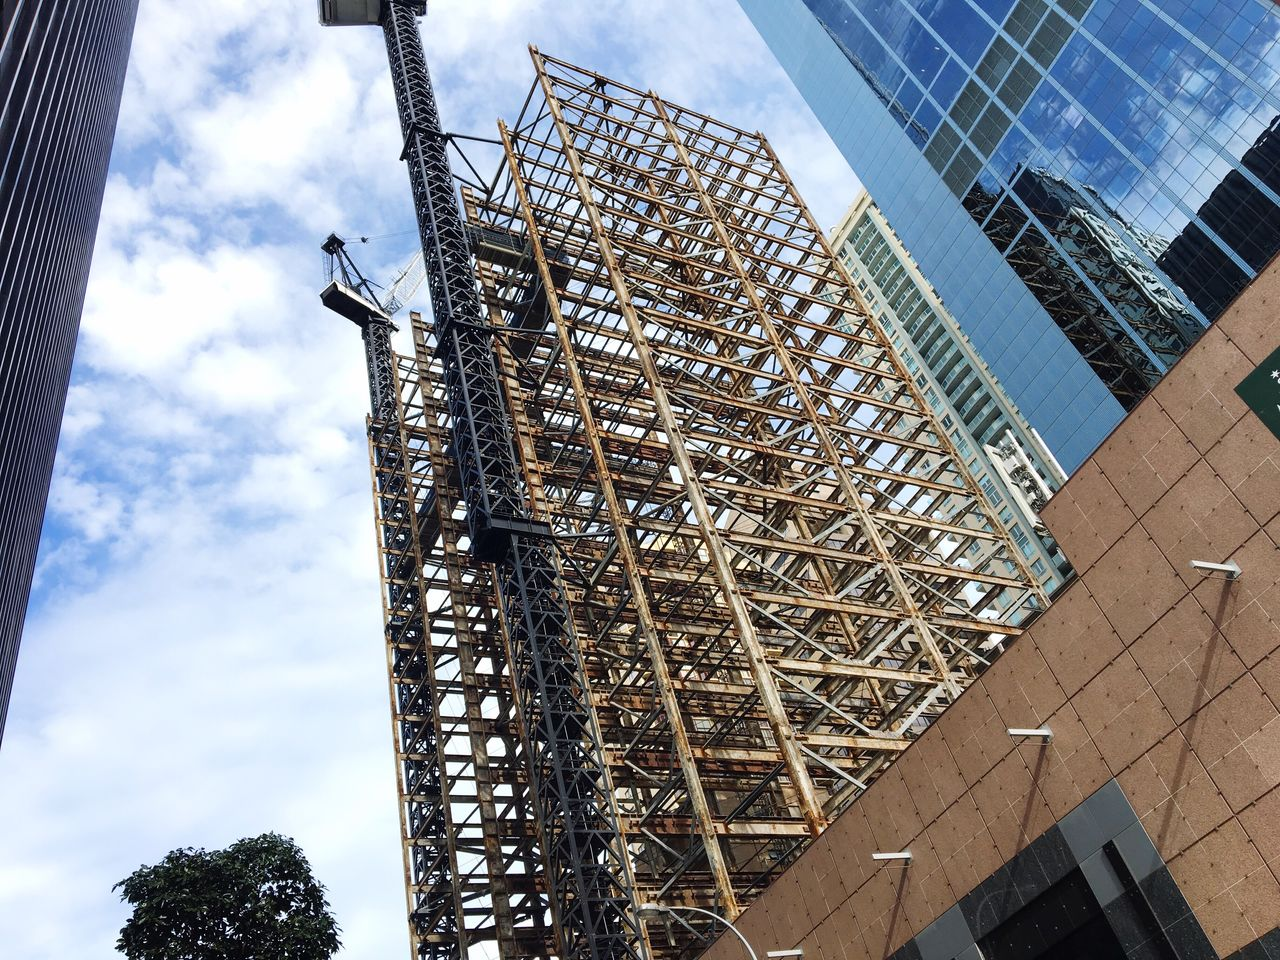 architecture, built structure, low angle view, construction site, sky, development, building exterior, cloud - sky, building - activity, day, construction frame, outdoors, no people, skyscraper, tree